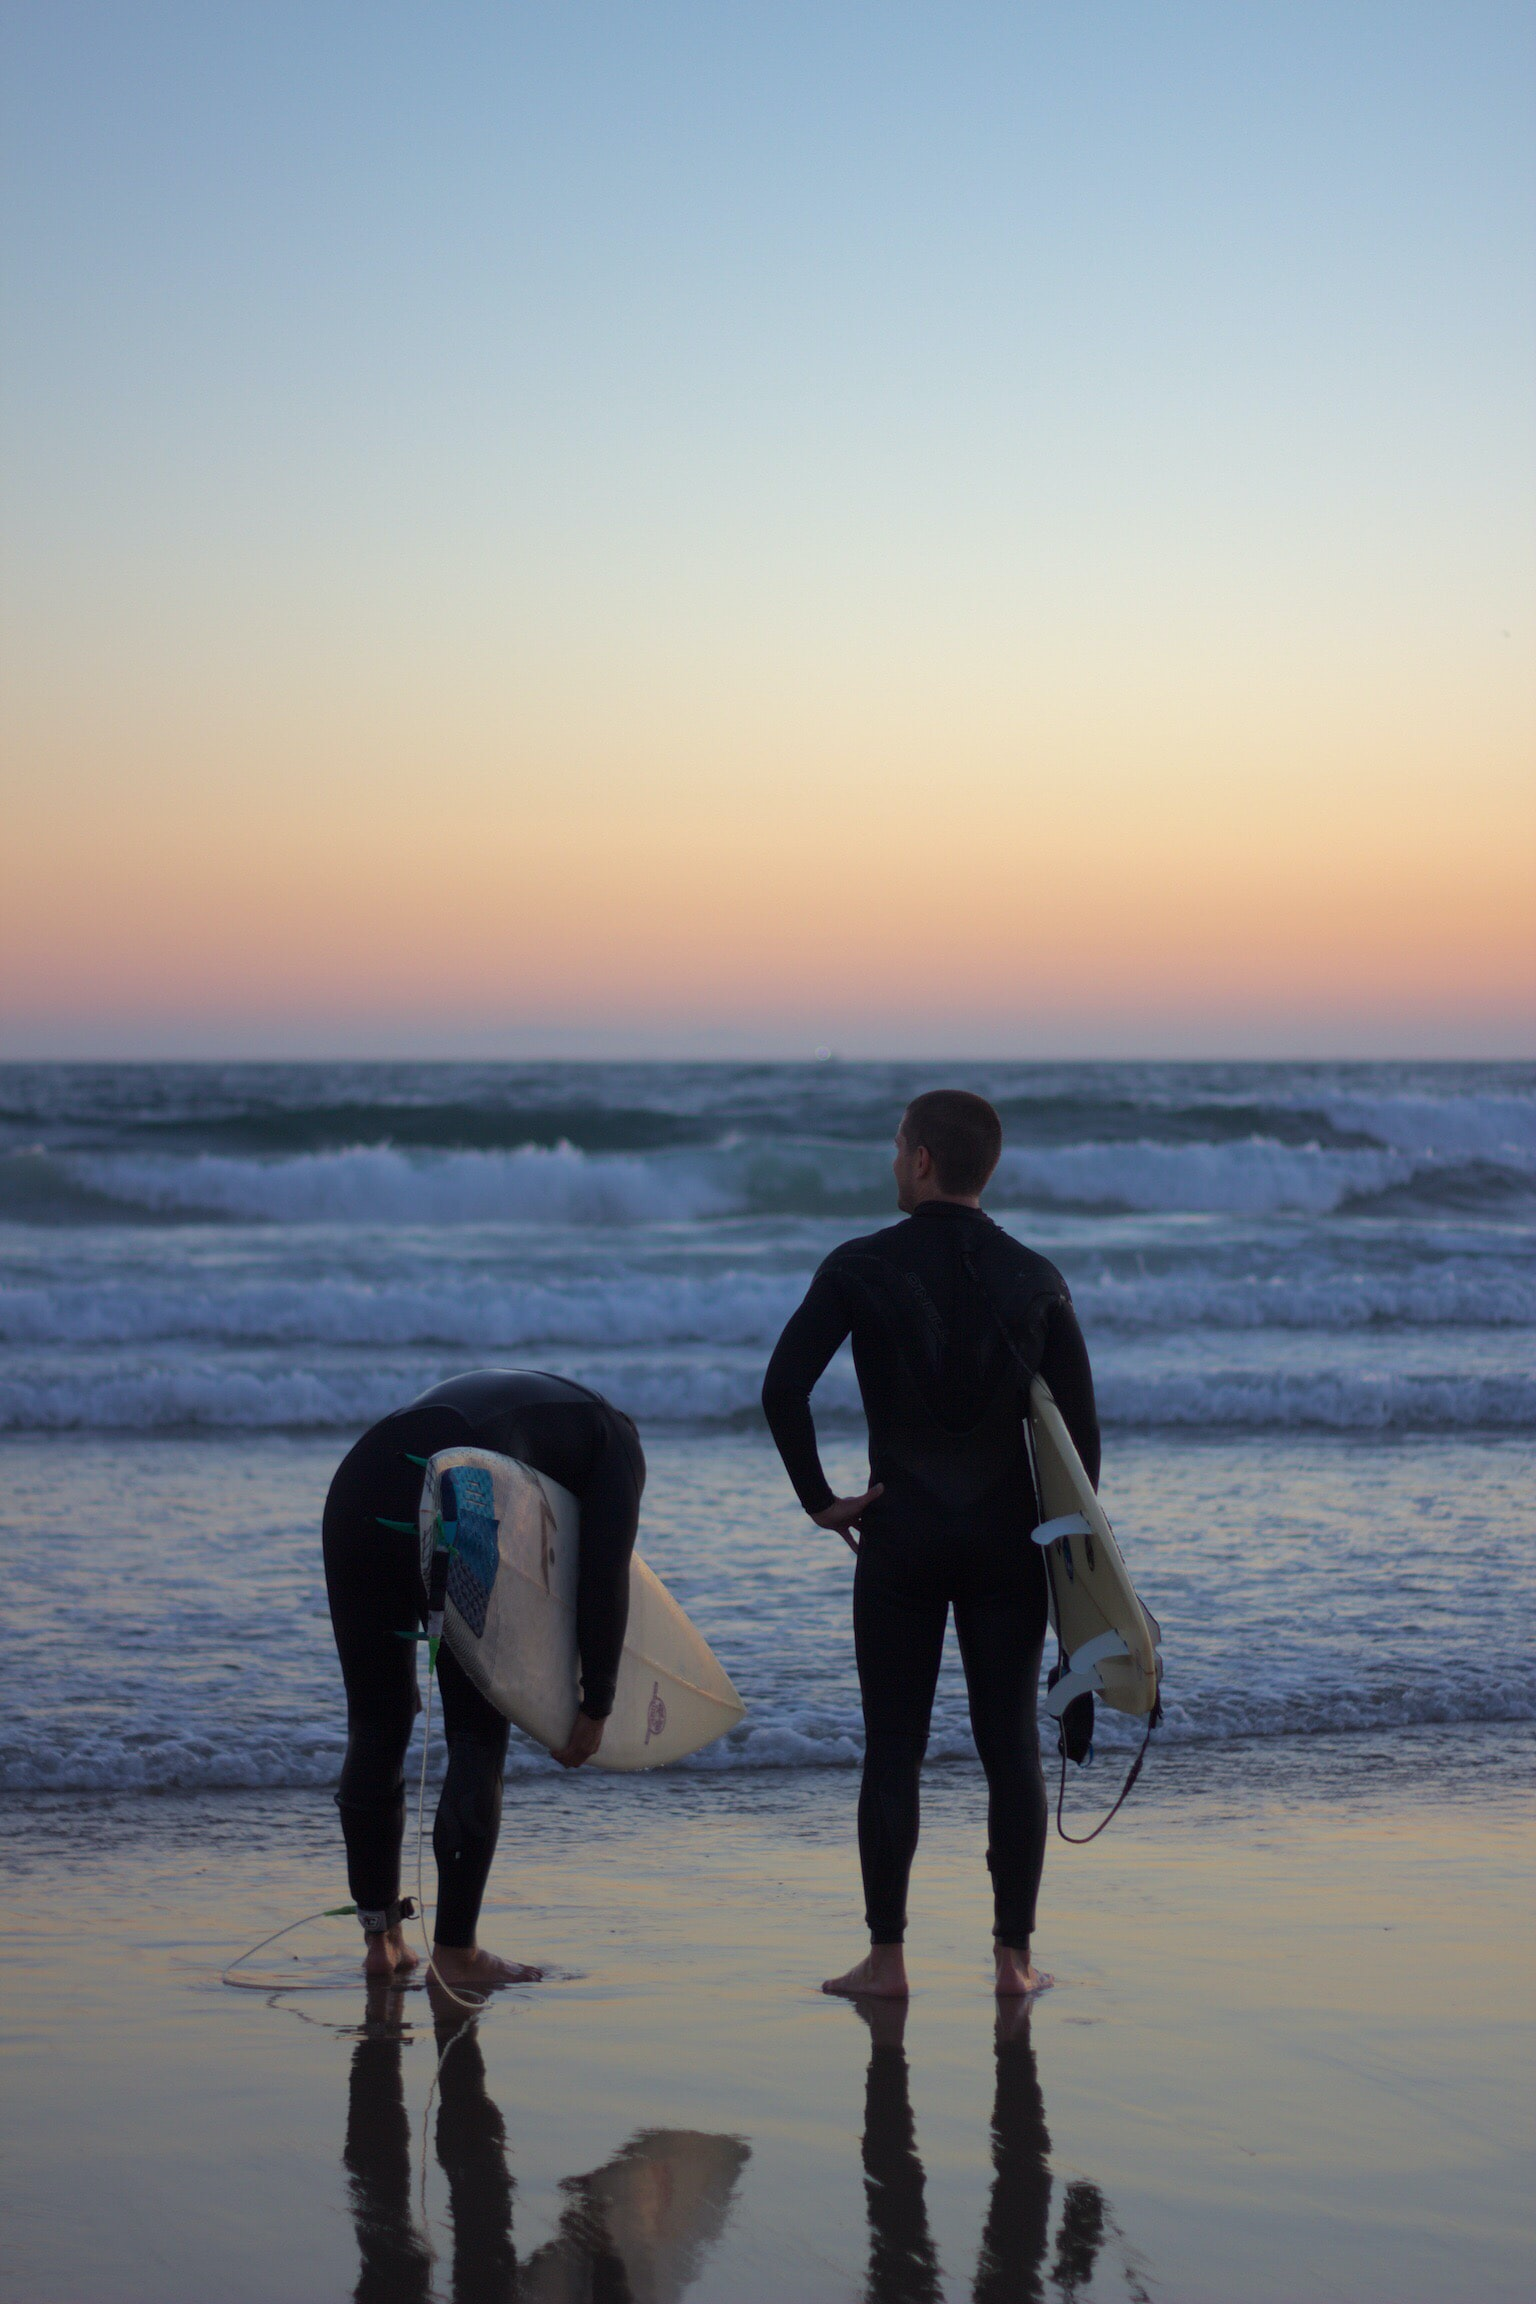 two person in black wetsuit holding surfboards standing on beach